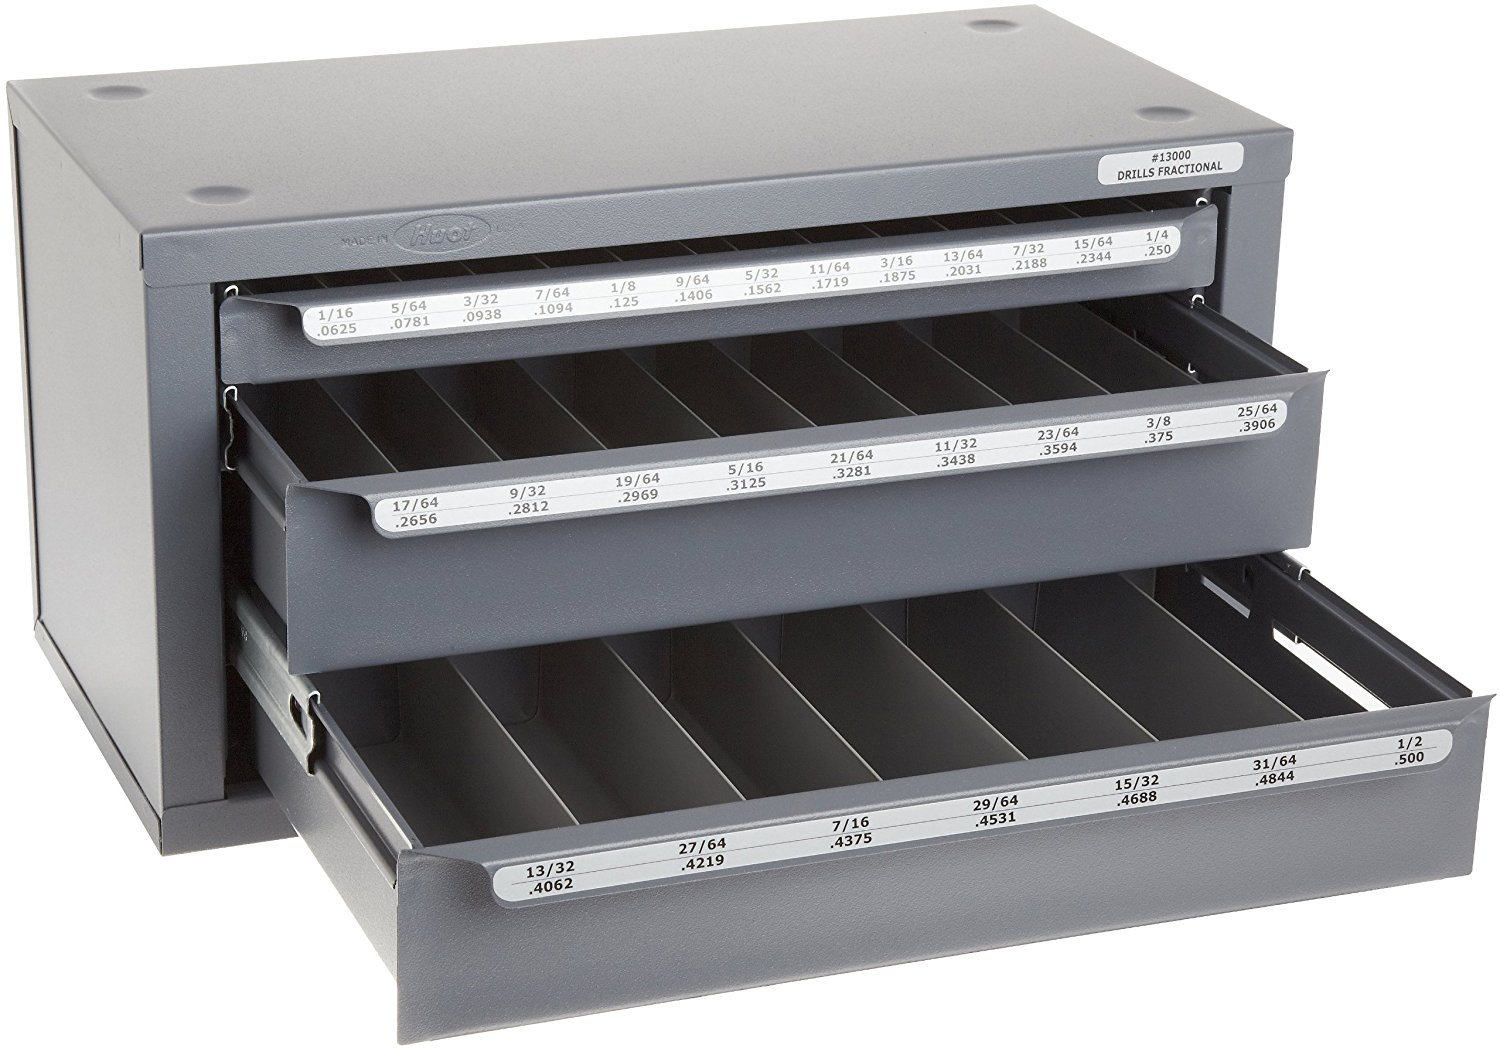 Huot 13000 Three-Drawer Drill Bit Dispenser Cabinet for Jobber Length Fractional Sizes 1/16'' to 1/2'' in 1/64'' Increments by Huot Manufacturing